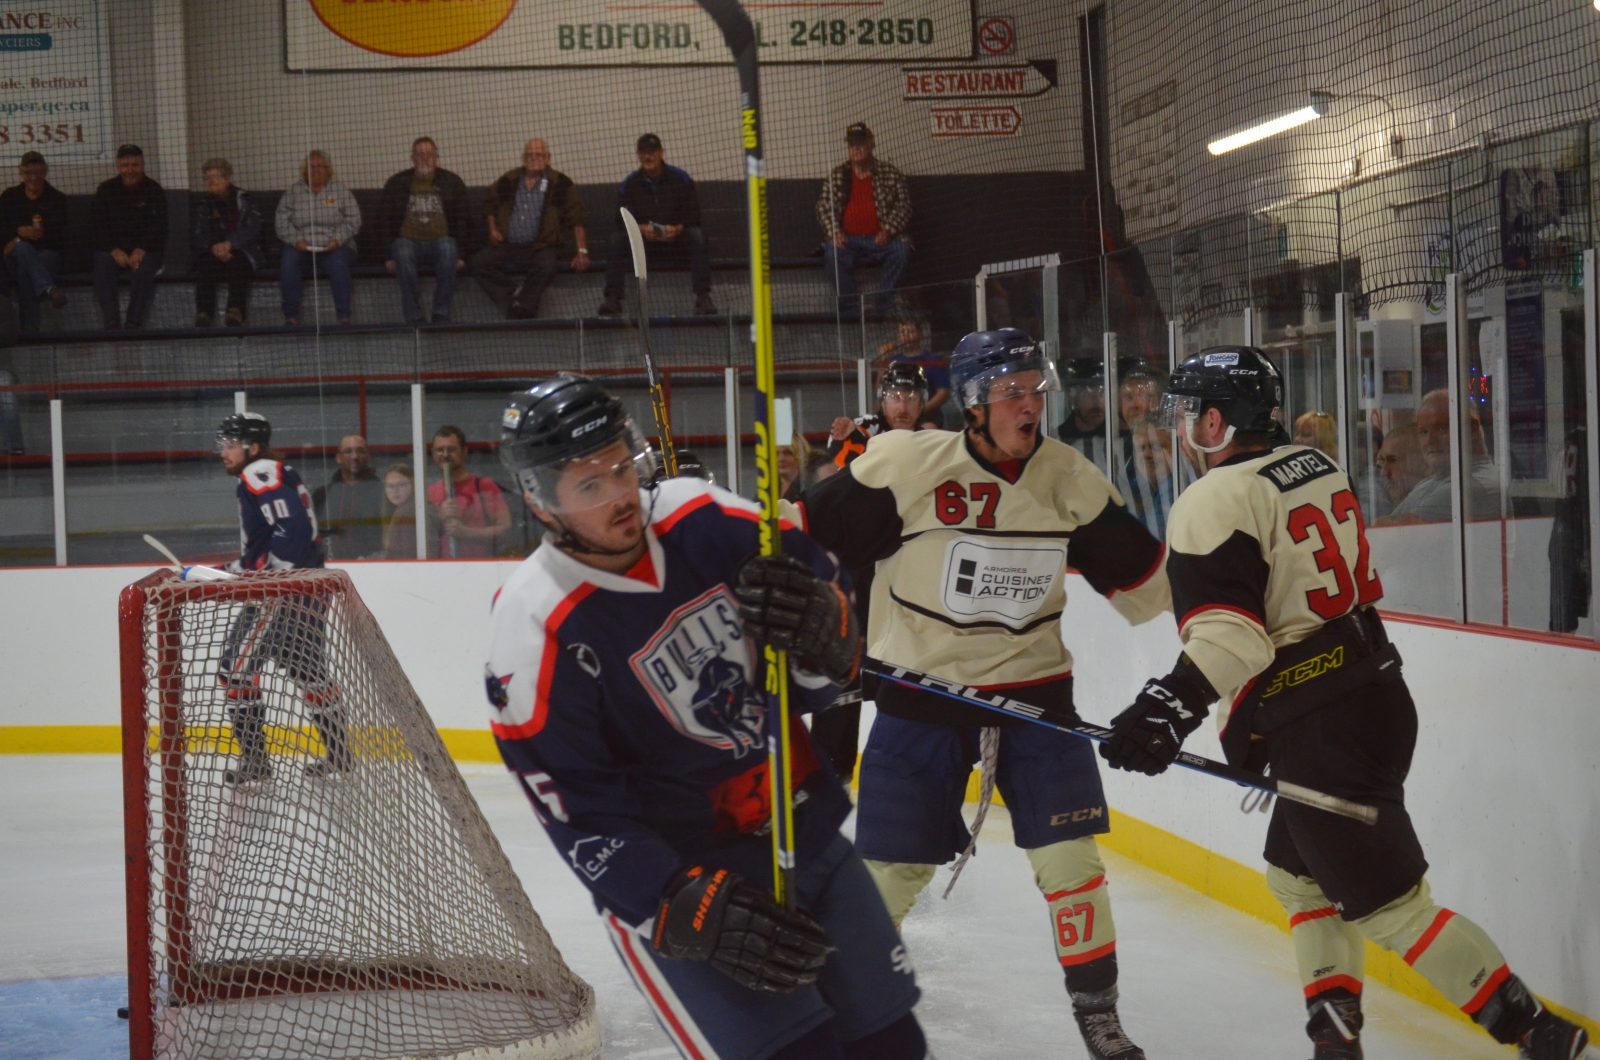 Hockey senior: Bedford l'emporte 6-3 contre Farnham